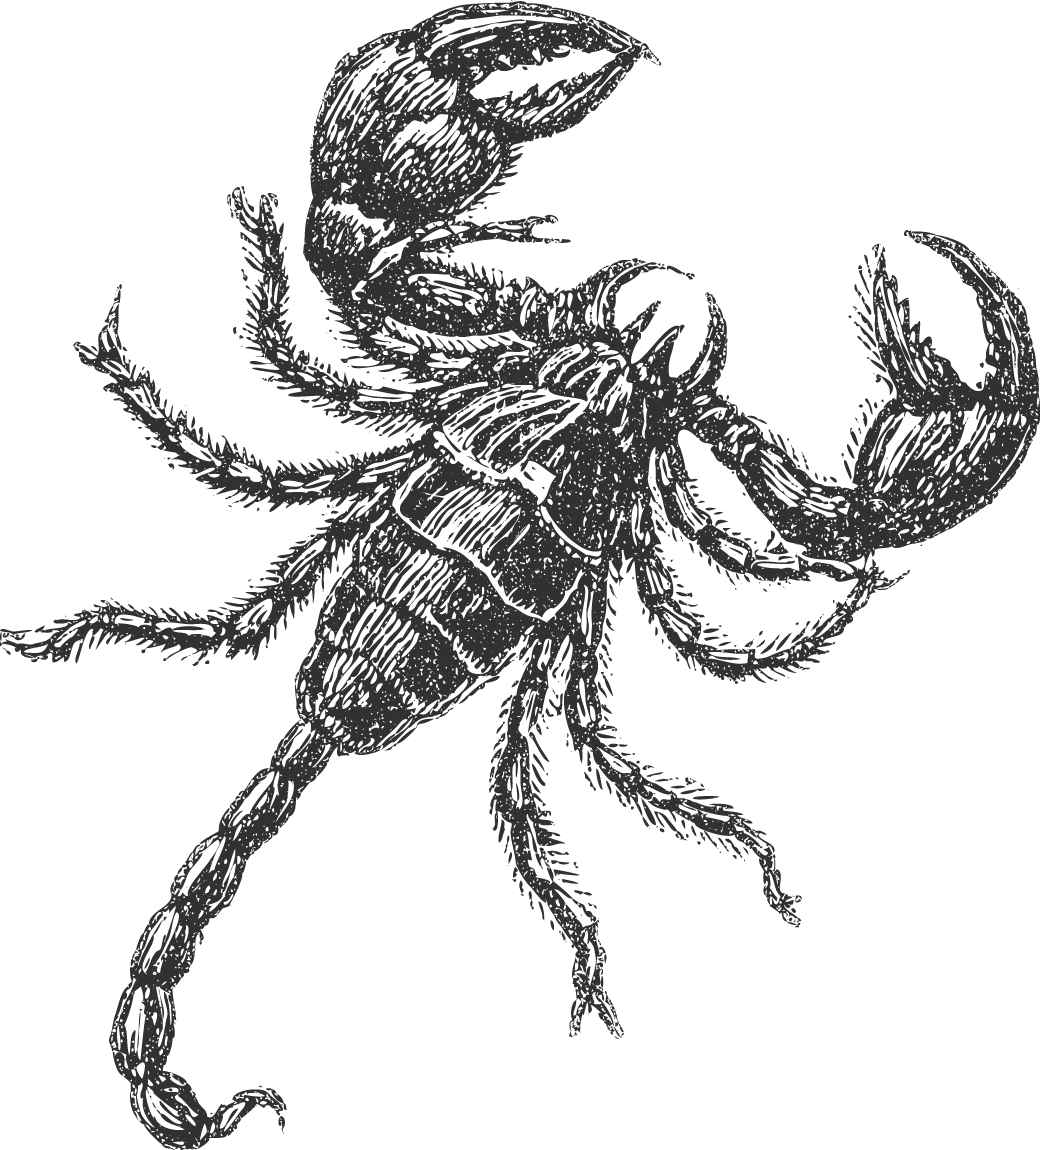 Drawing scorpion insect. The quintessential mind